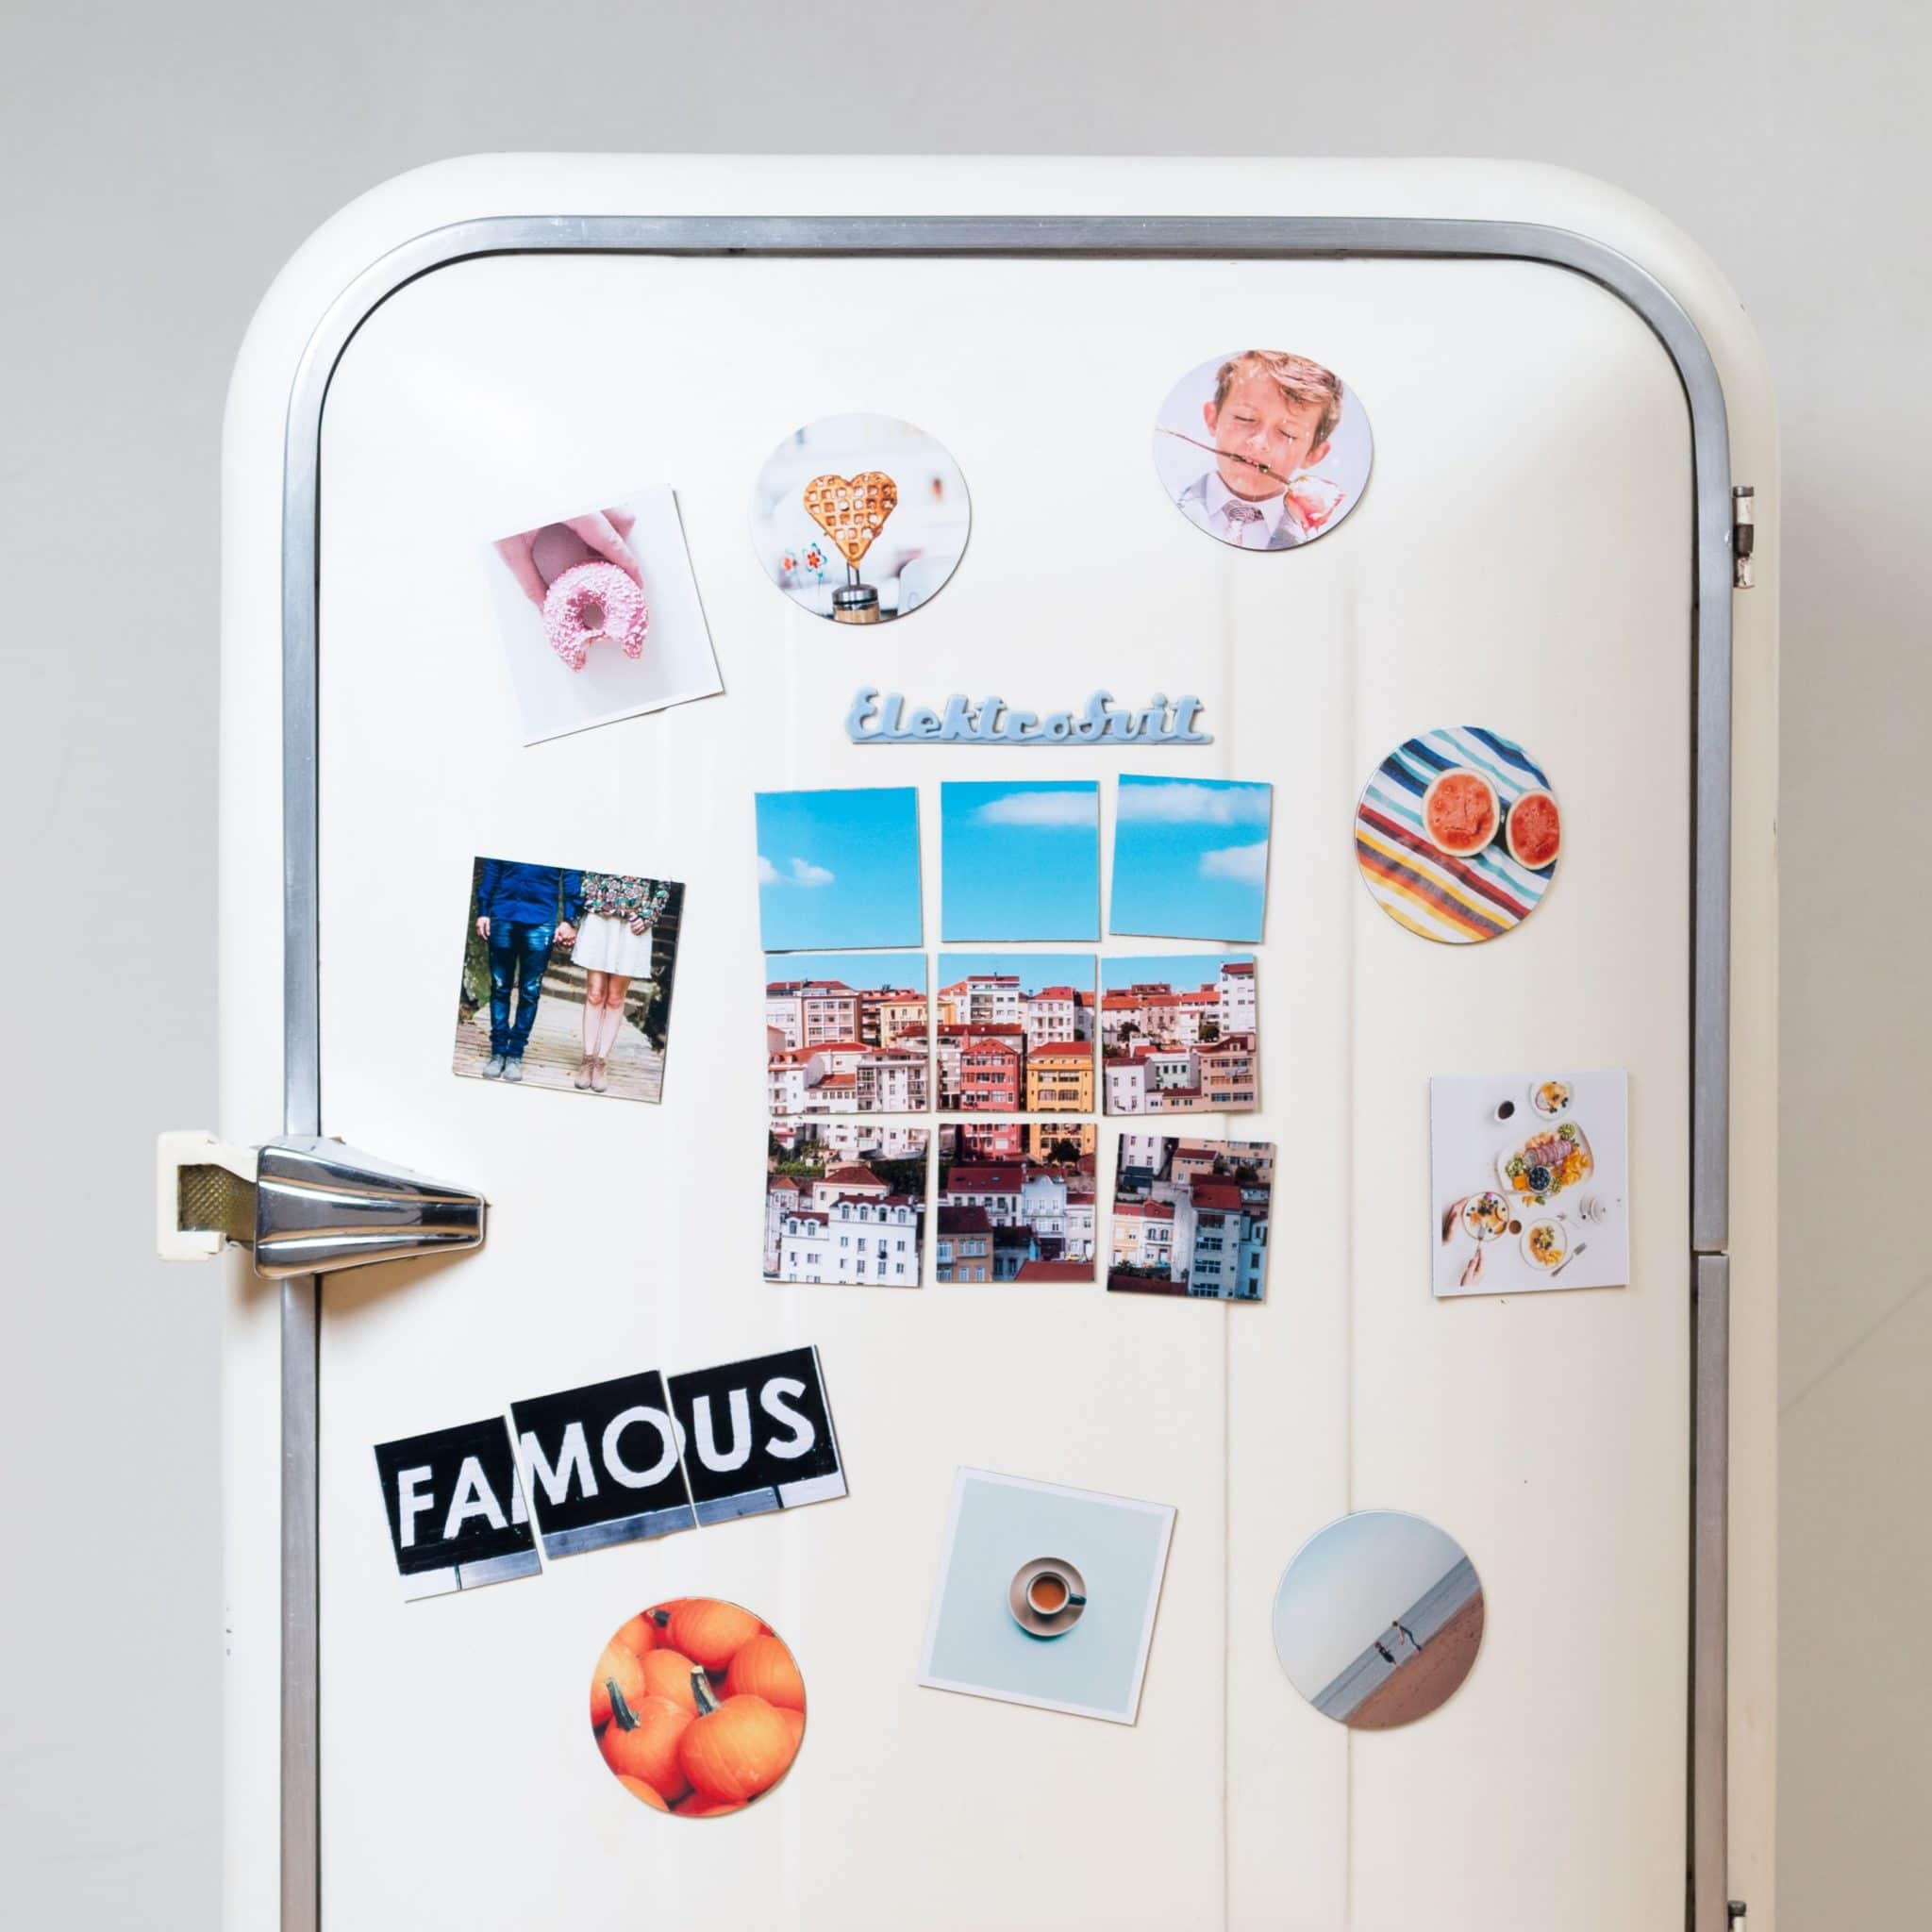 a refrigerator representing a trigger for emotional eating during isolation